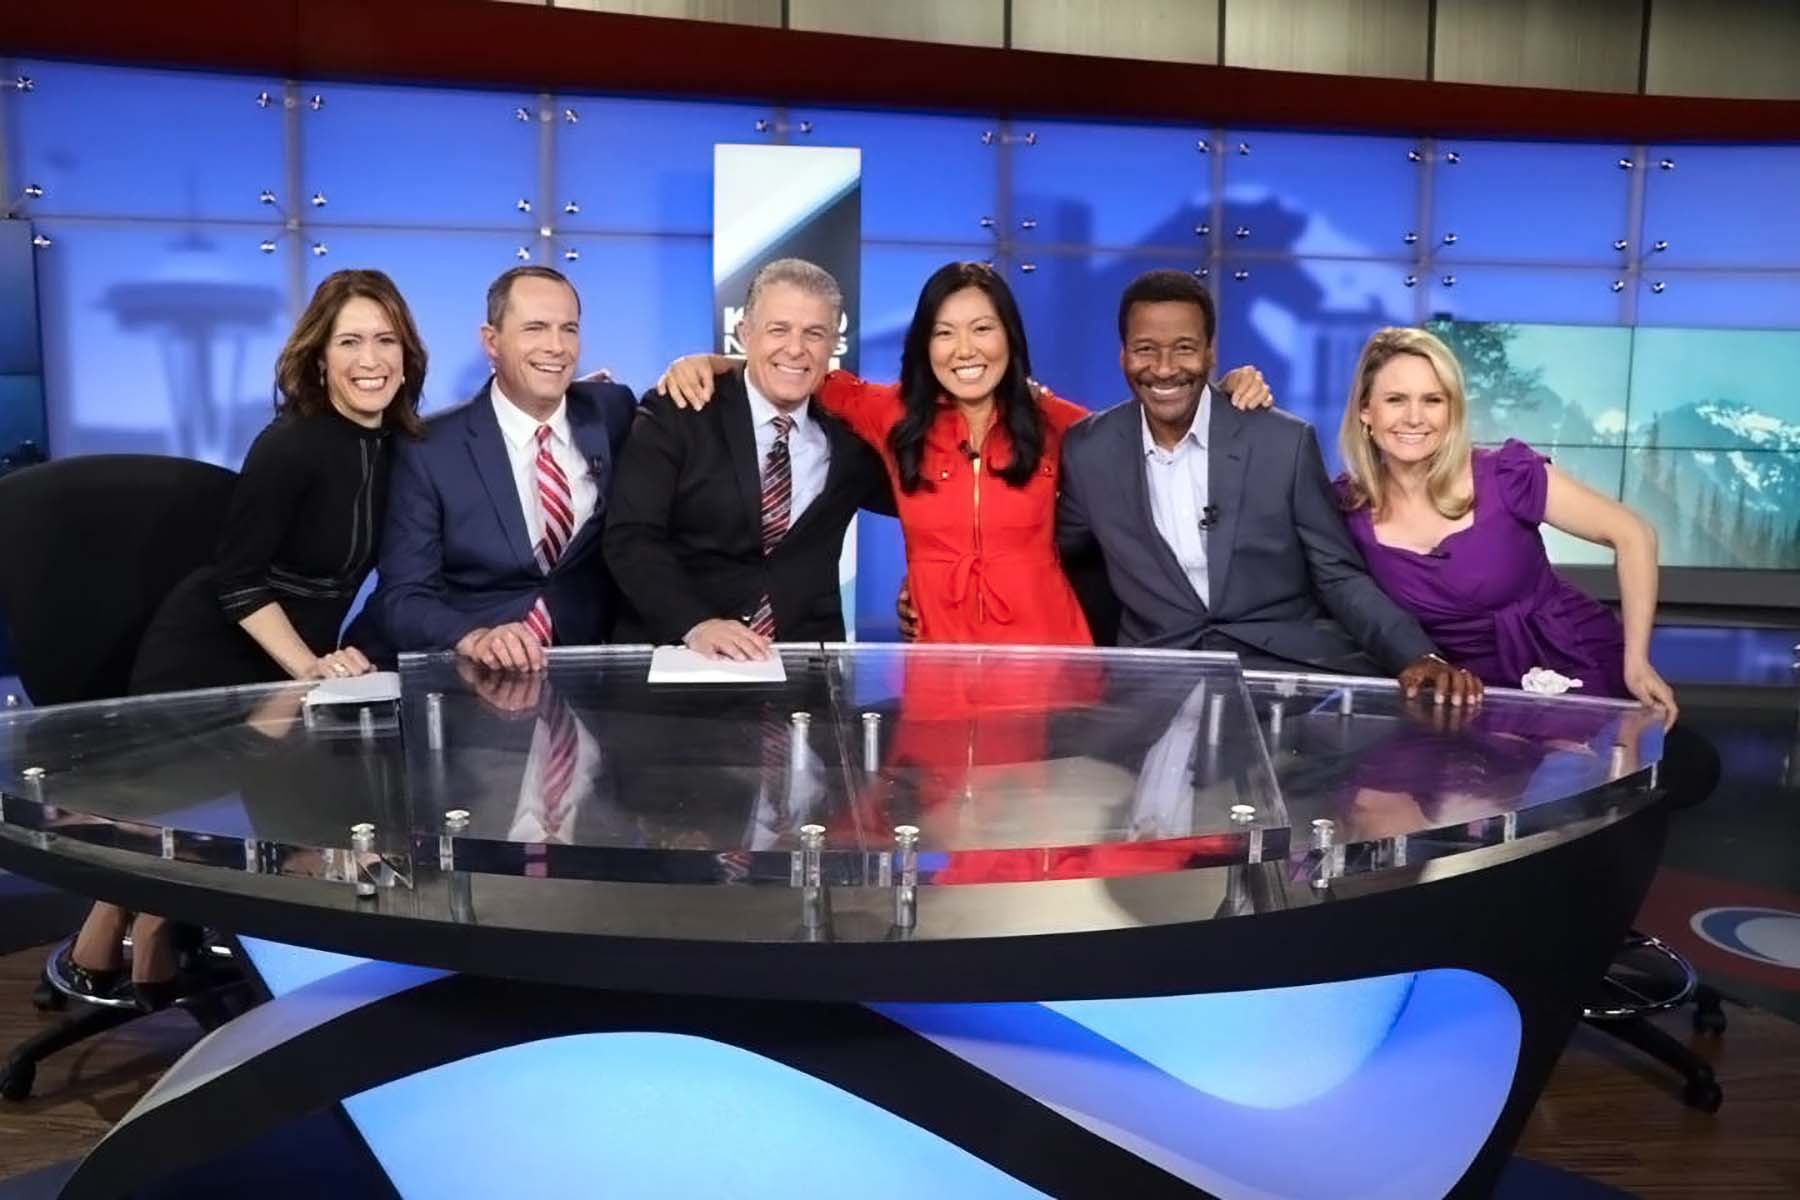 KOMO 4 News anchors